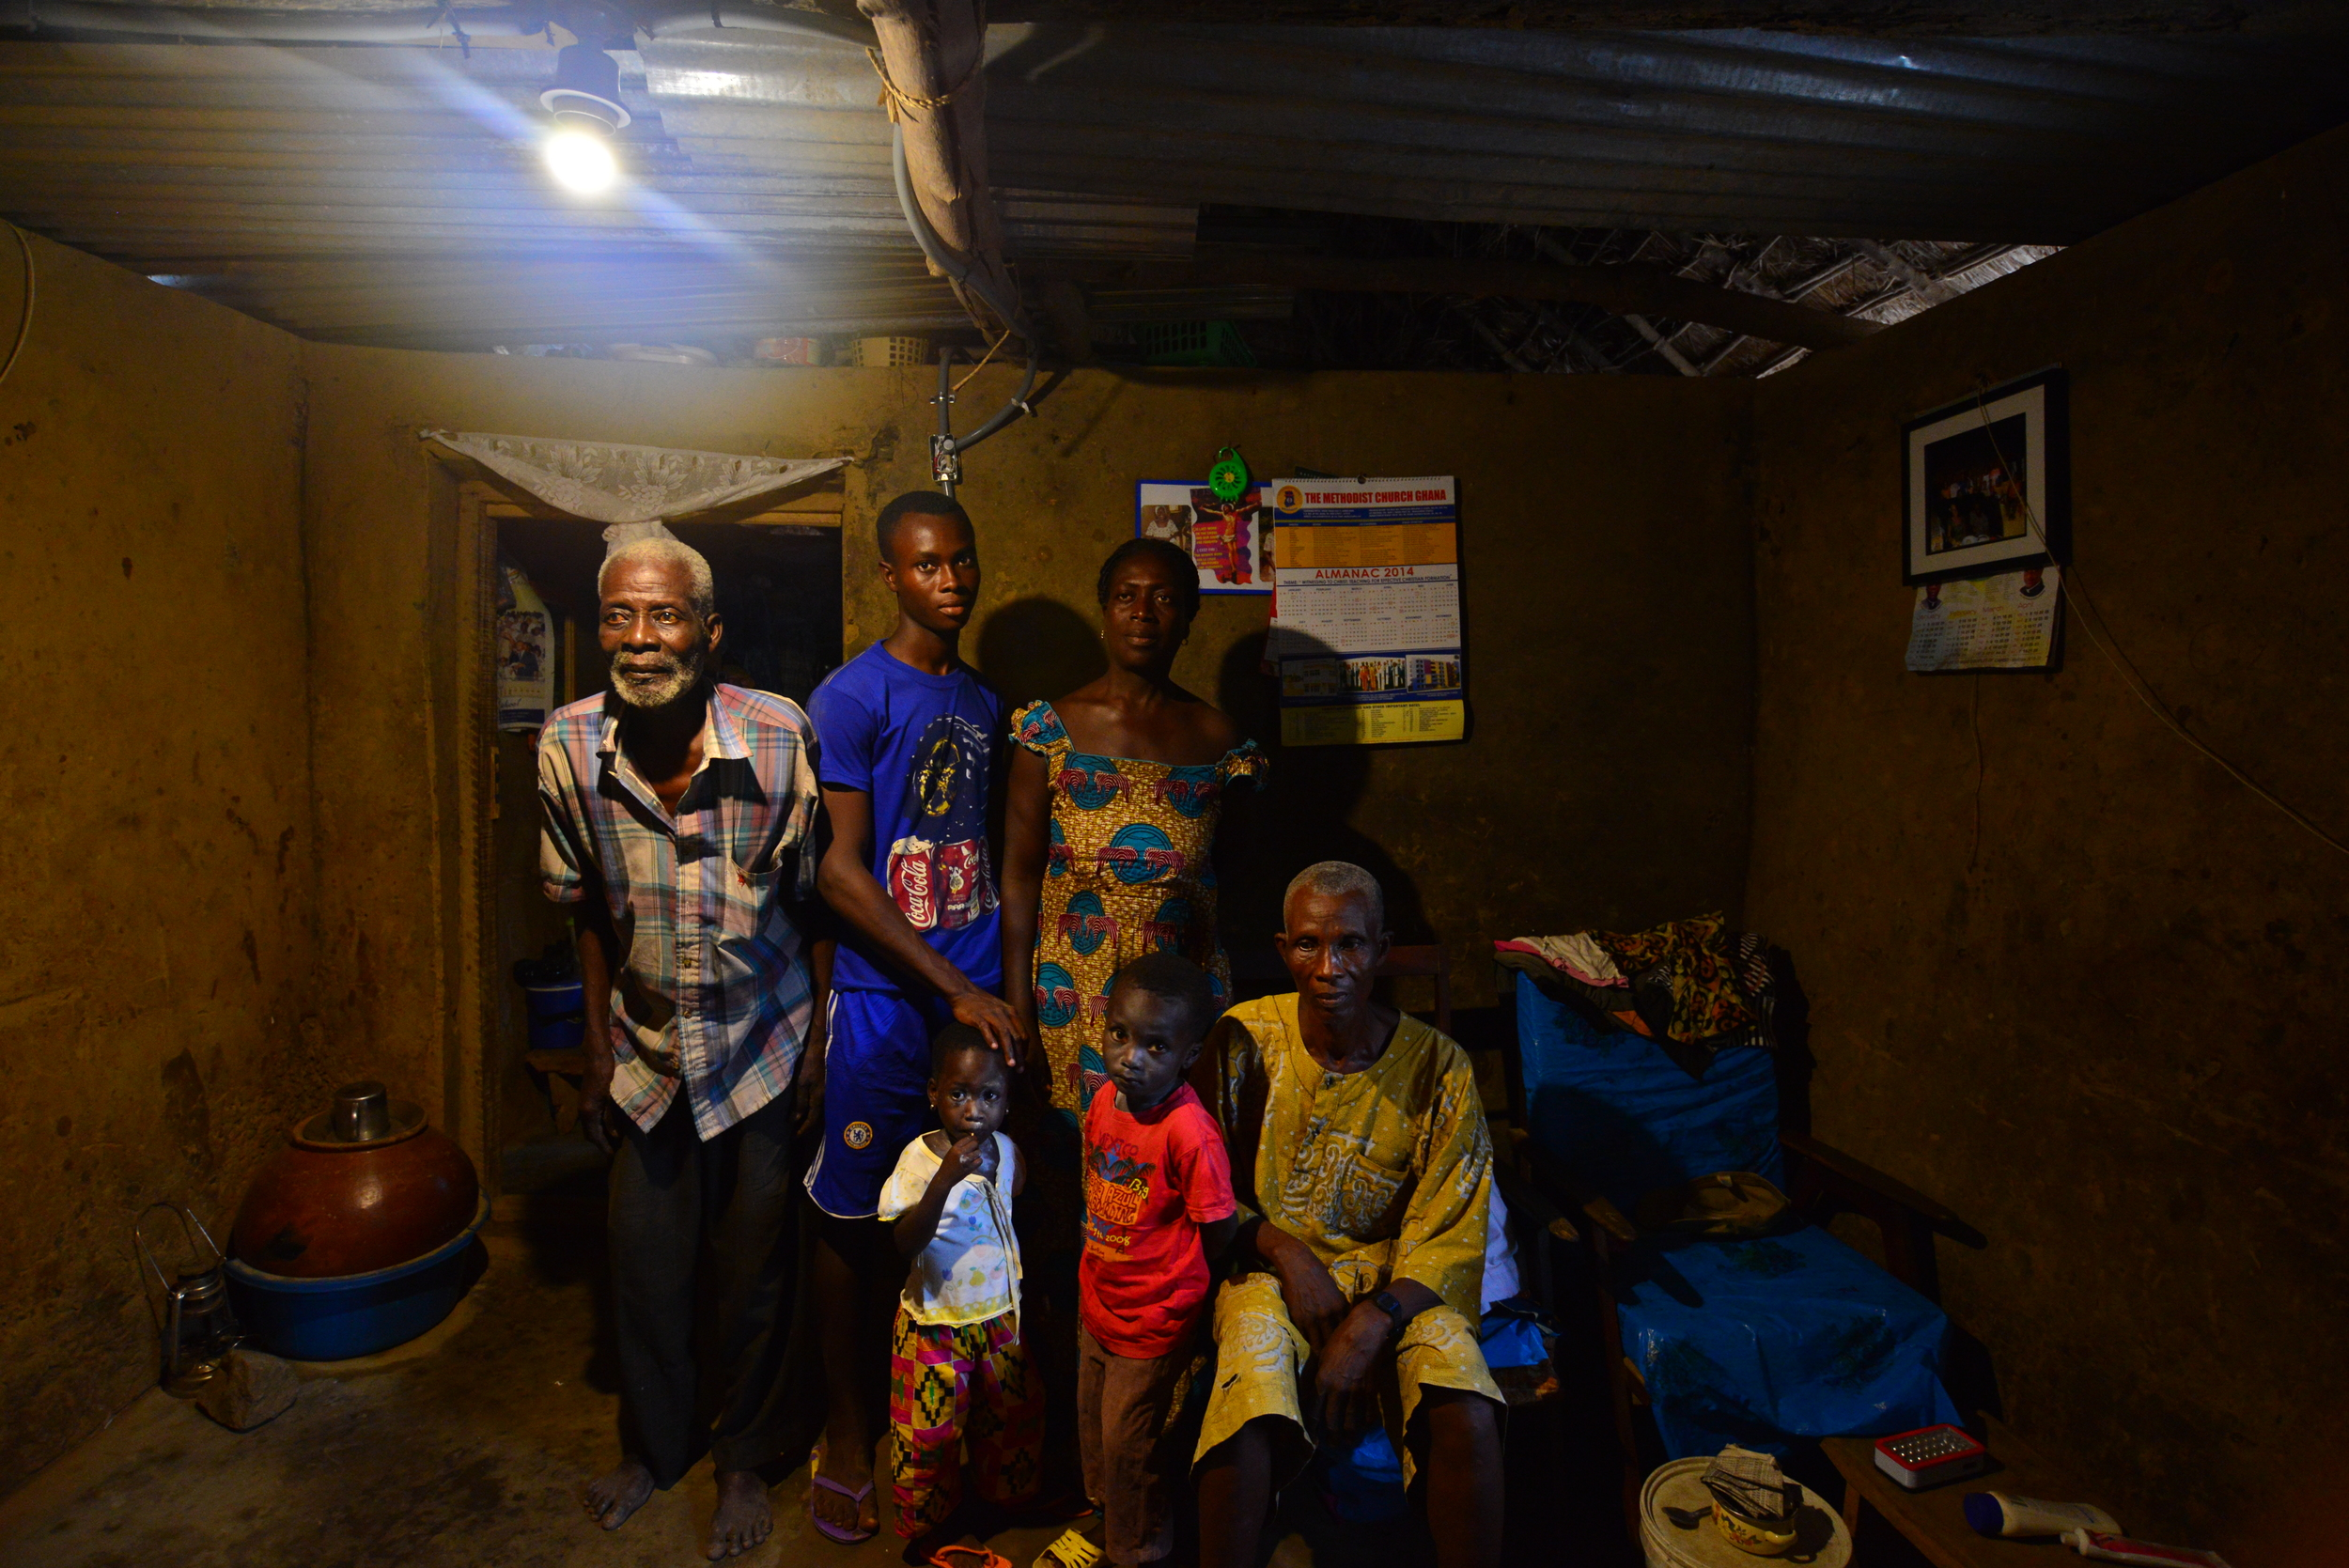 The Village Solar Project uses solar power to provide opportunities for people living in remote villages to have electricity in their homes.